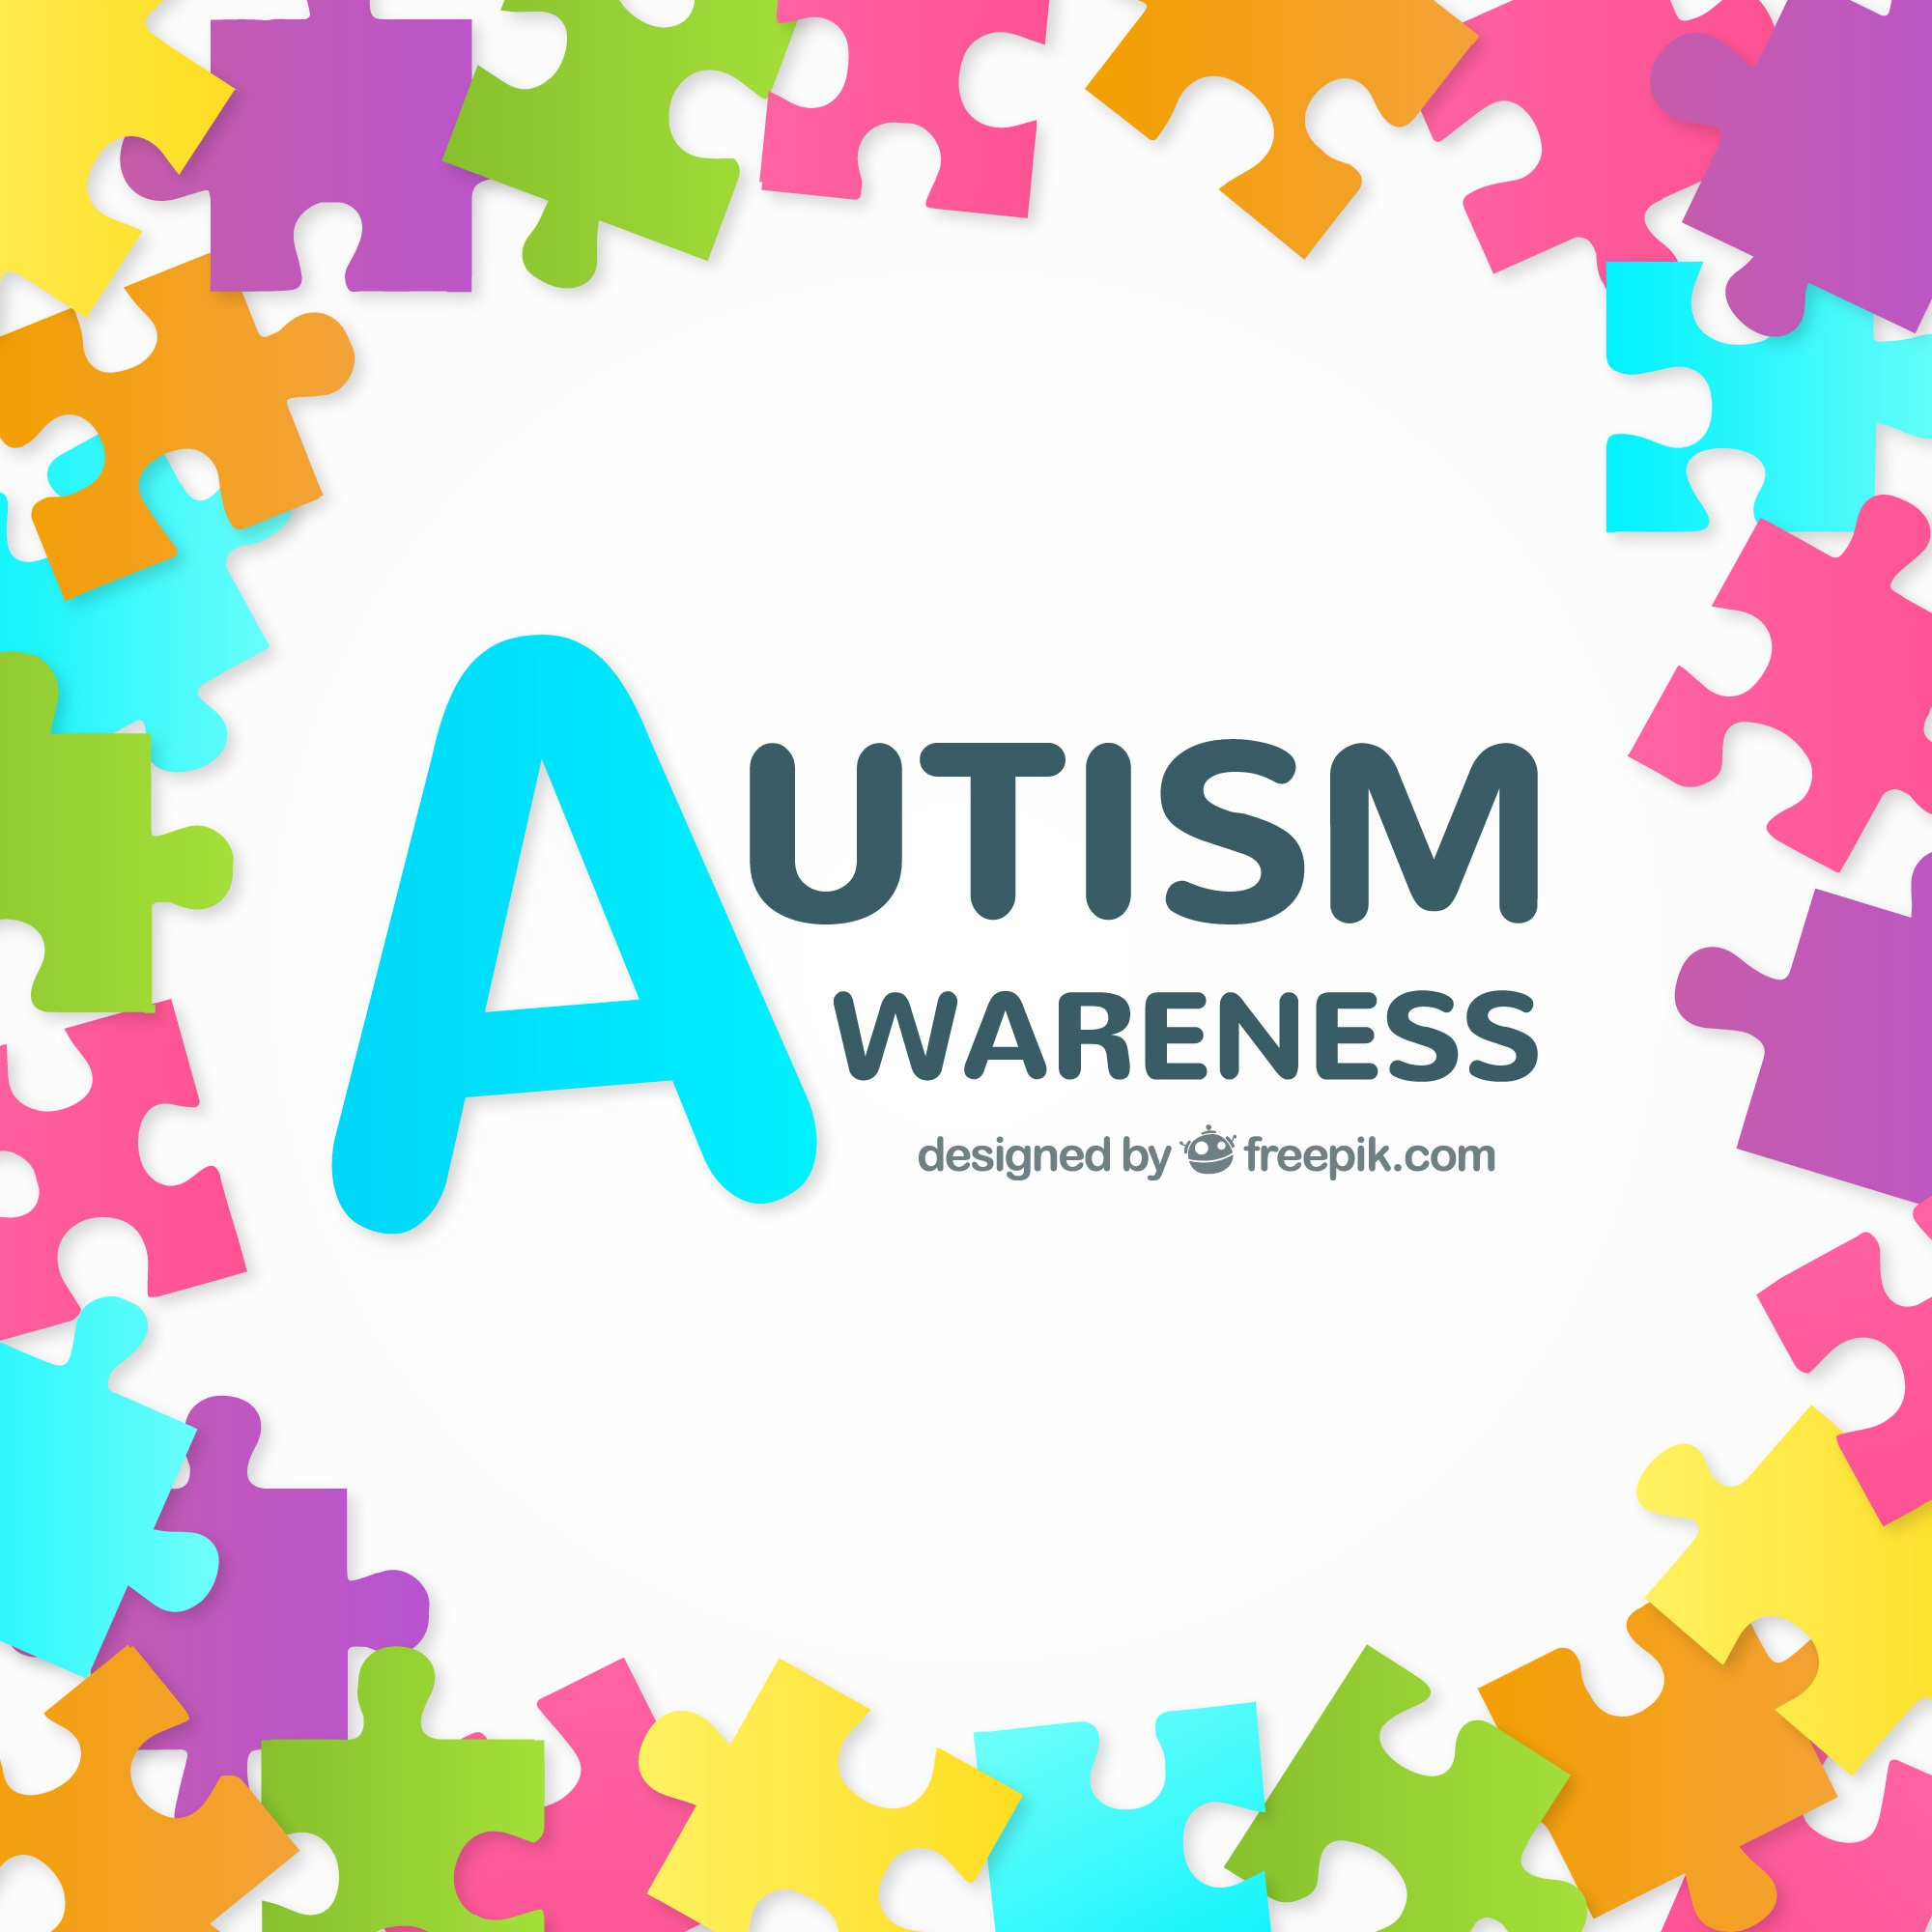 Background of colorful puzzle pieces of autism day